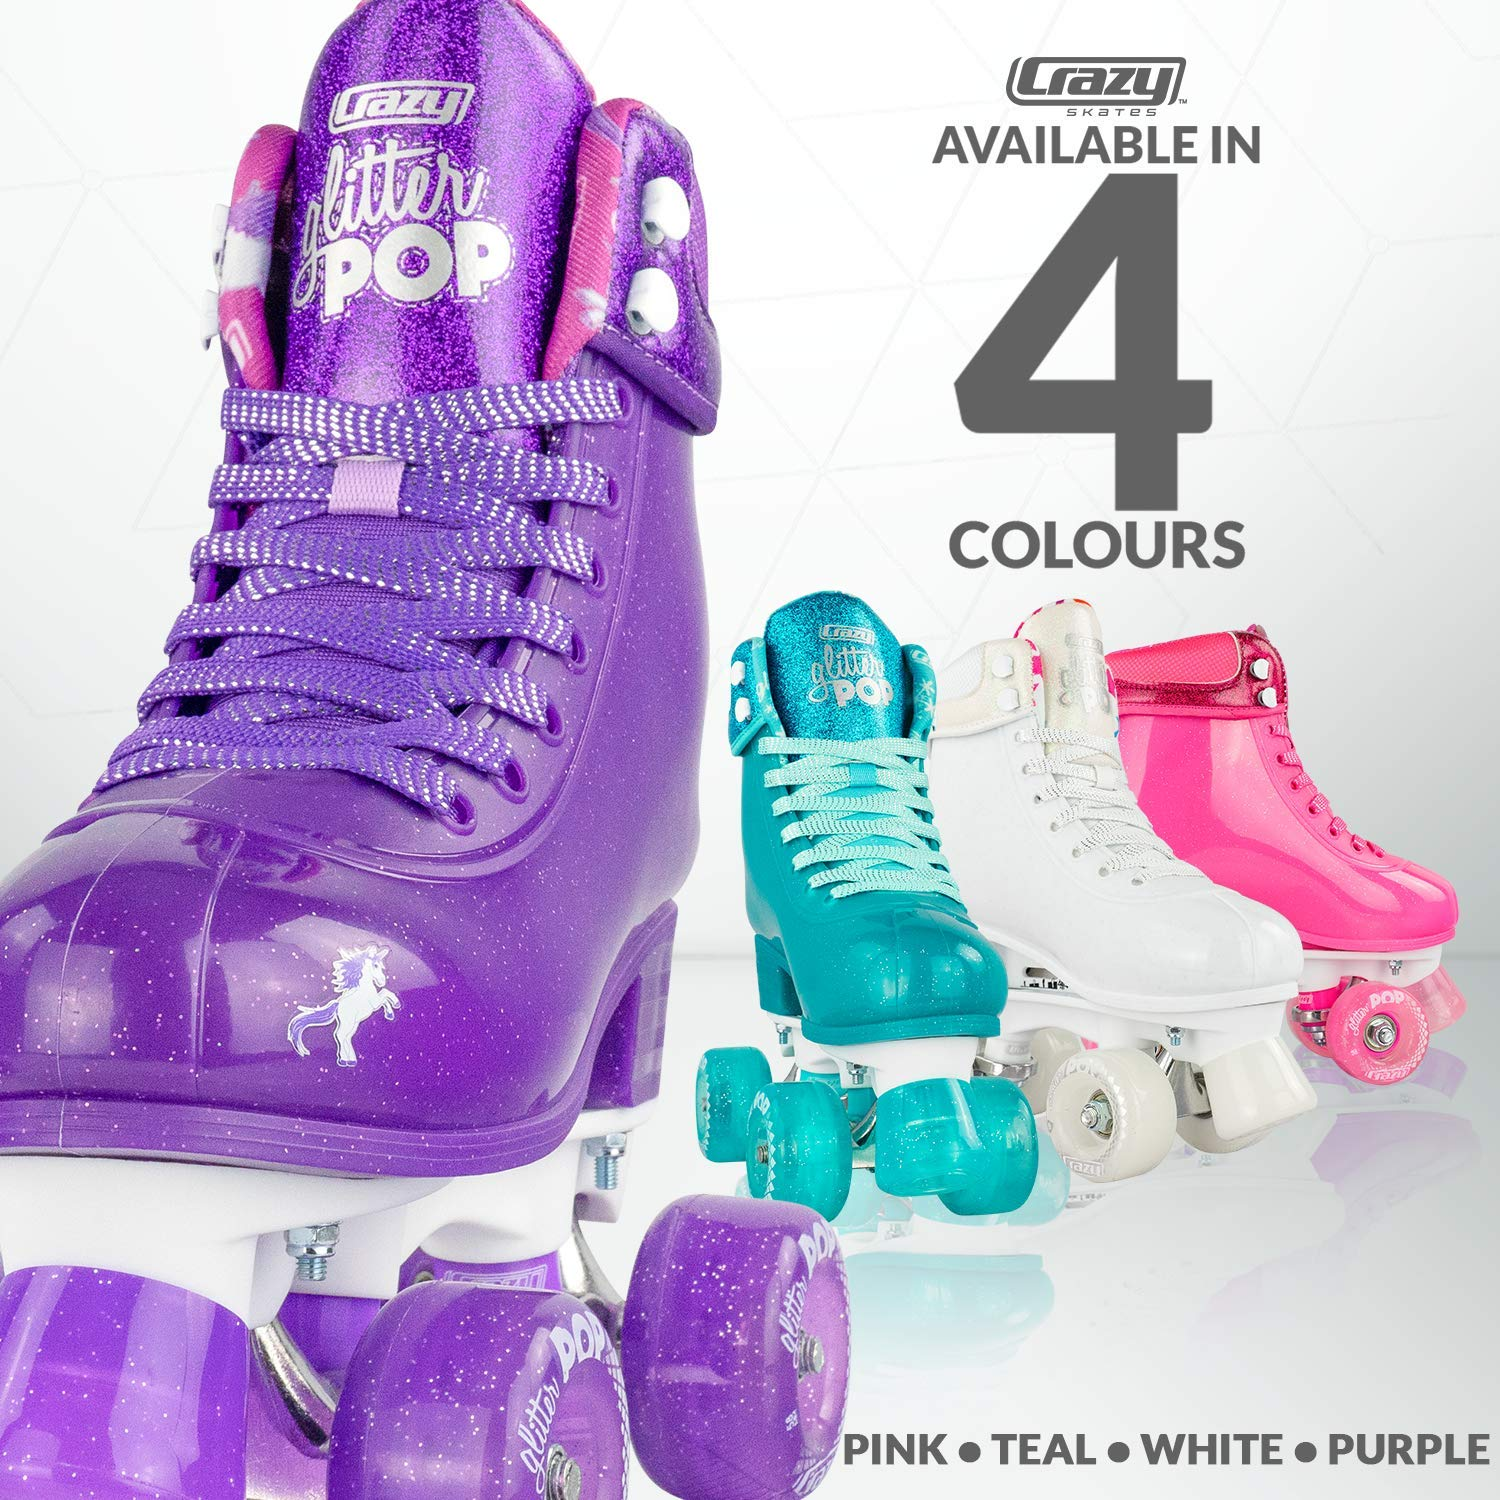 Crazy Skates Glitter POP Adjustable Roller Skates for Girls and Boys | Size Adjustable Quad Skates That Fit 4 Shoe Sizes | Purple (Sizes 3-6) by Crazy Skates (Image #4)